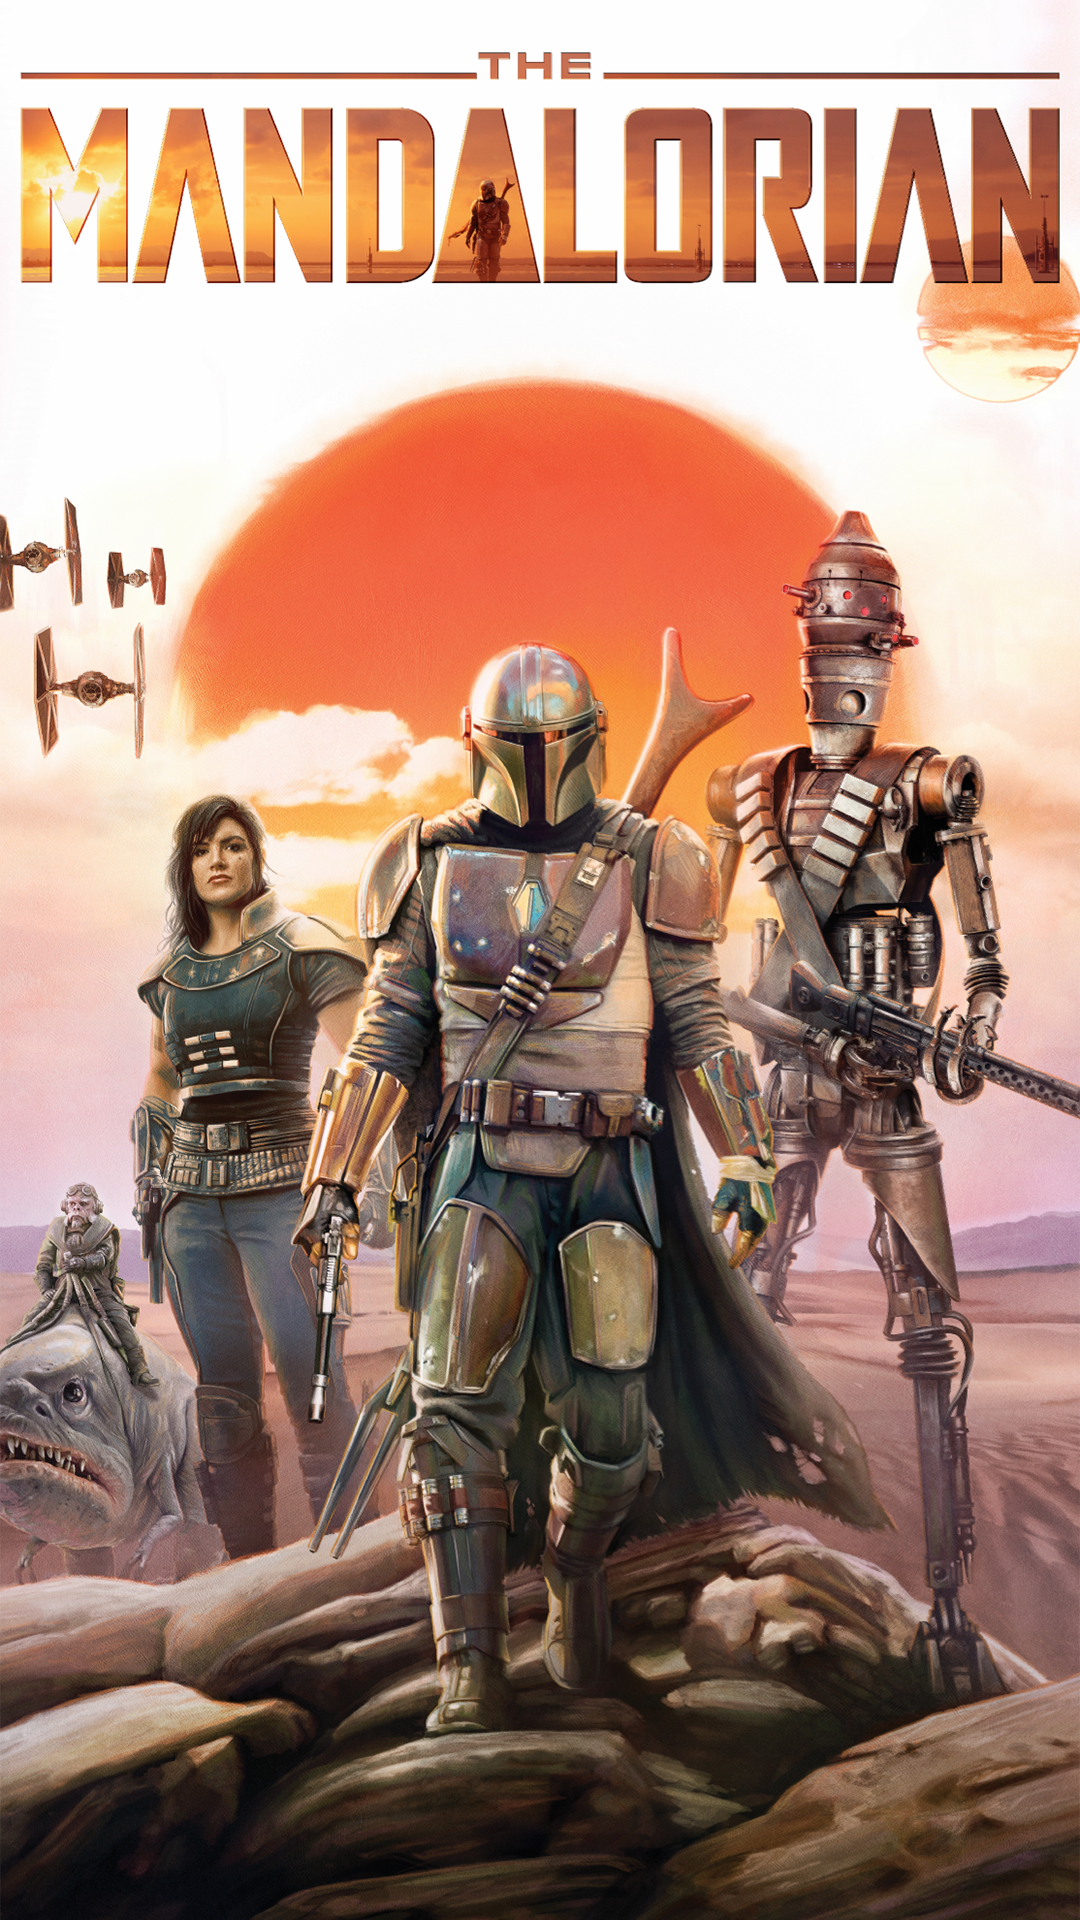 The Mandalorian Hd Phone Wallpapers 1080p Youloveit Com